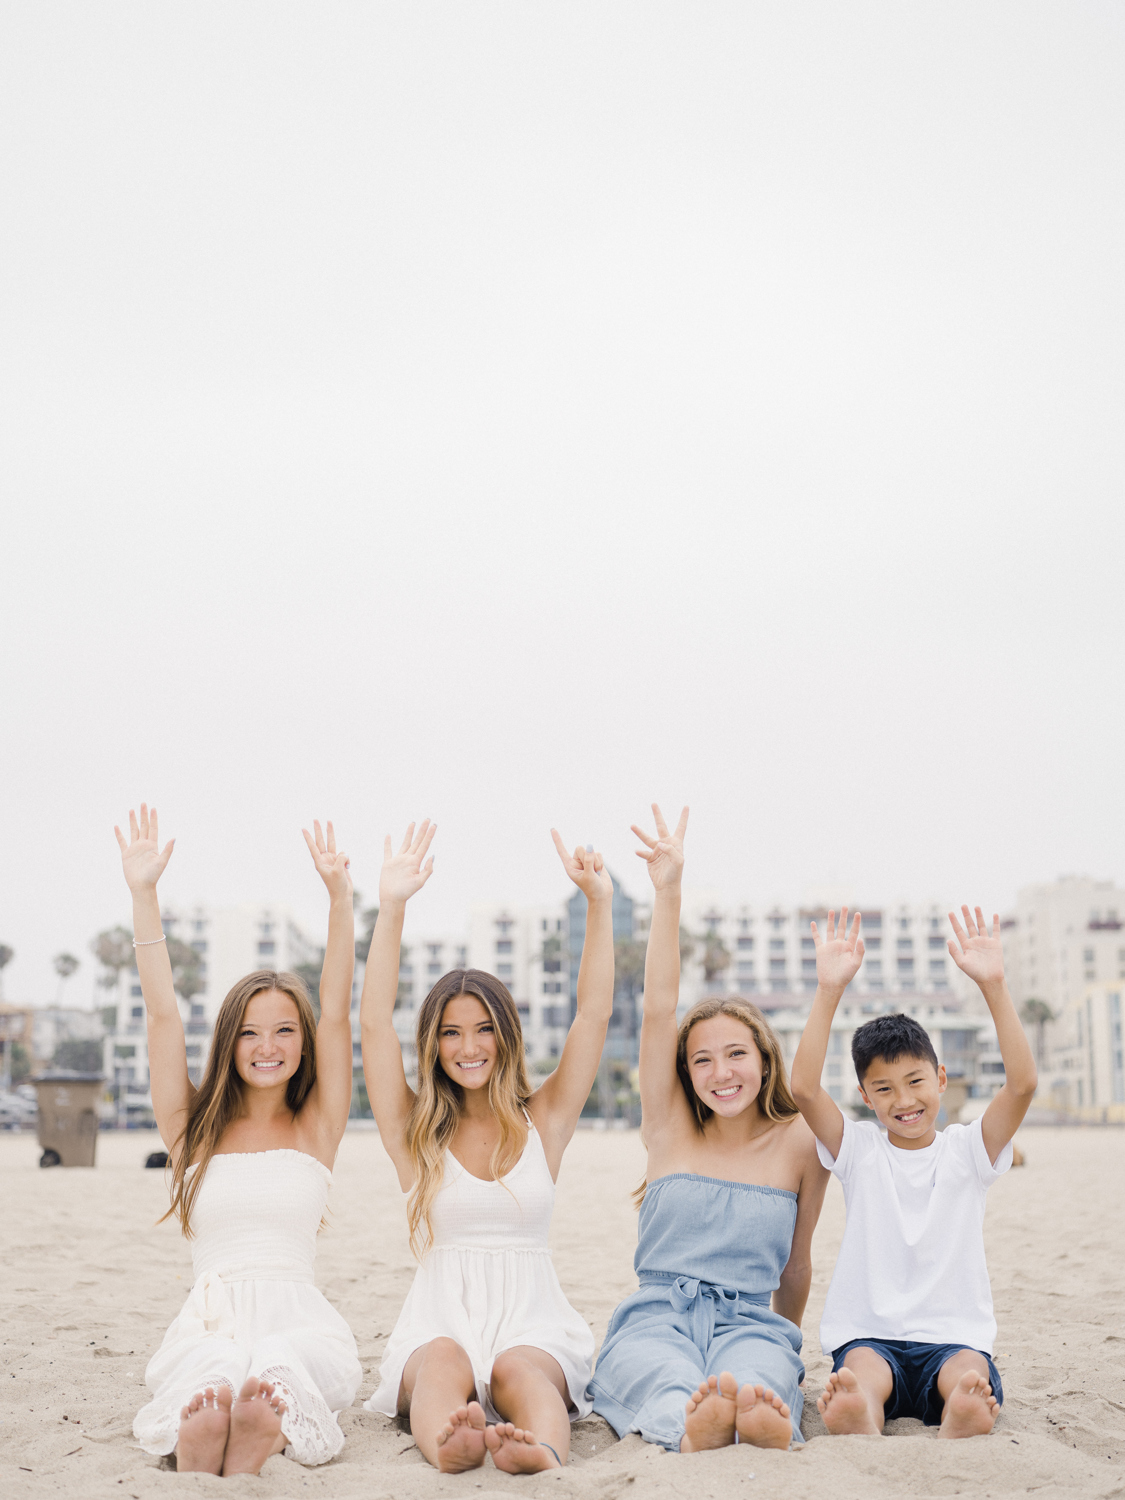 Four siblings sitting on the beach with their hands in the air